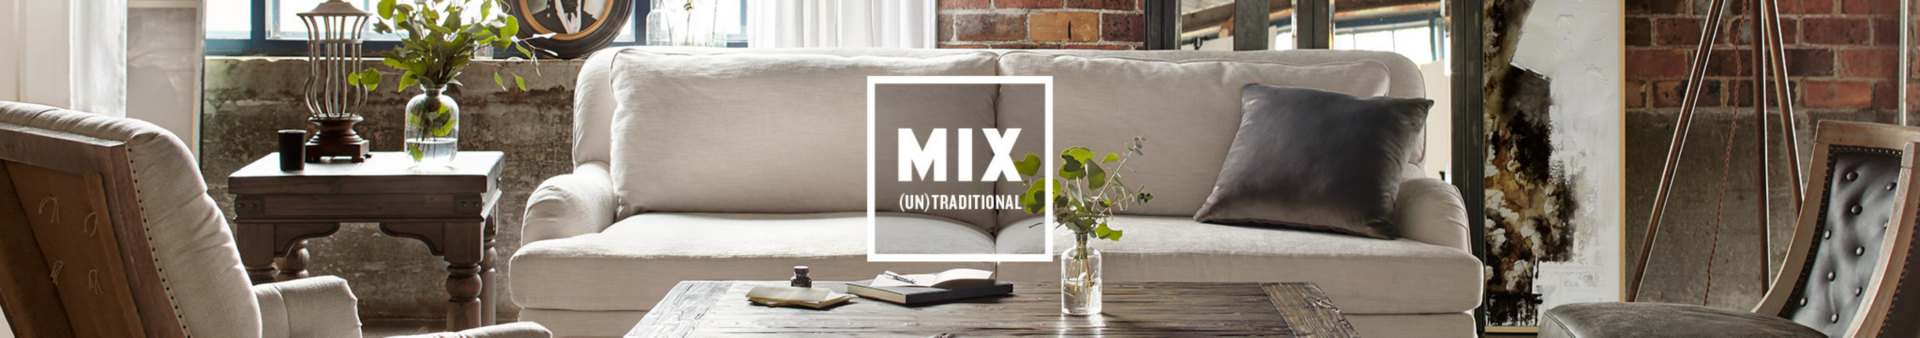 mix (un)traditional